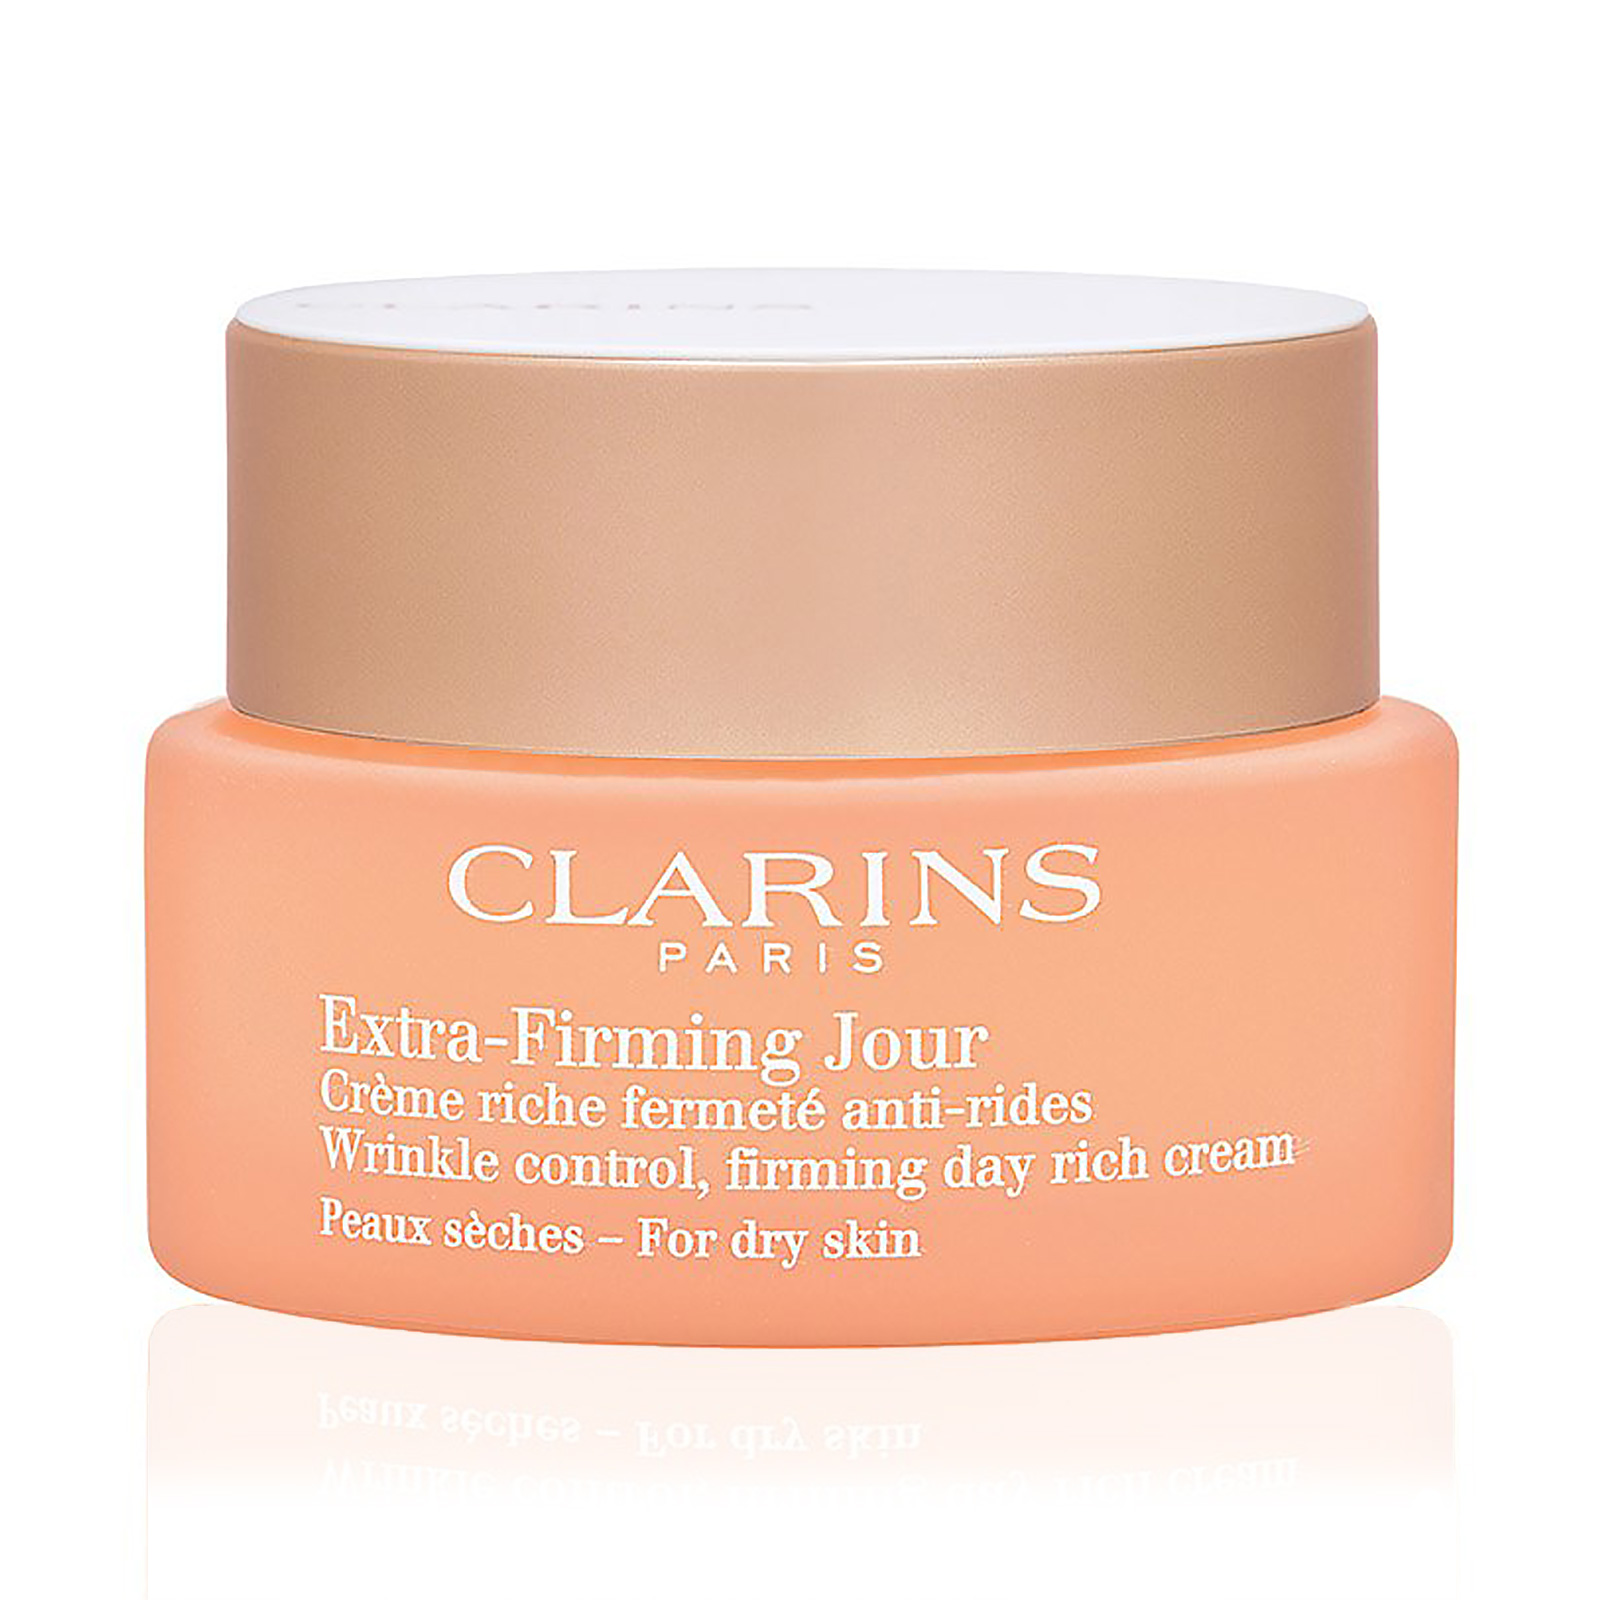 Extra-Firming Wrinkle Control, Firming Day Rich Cream